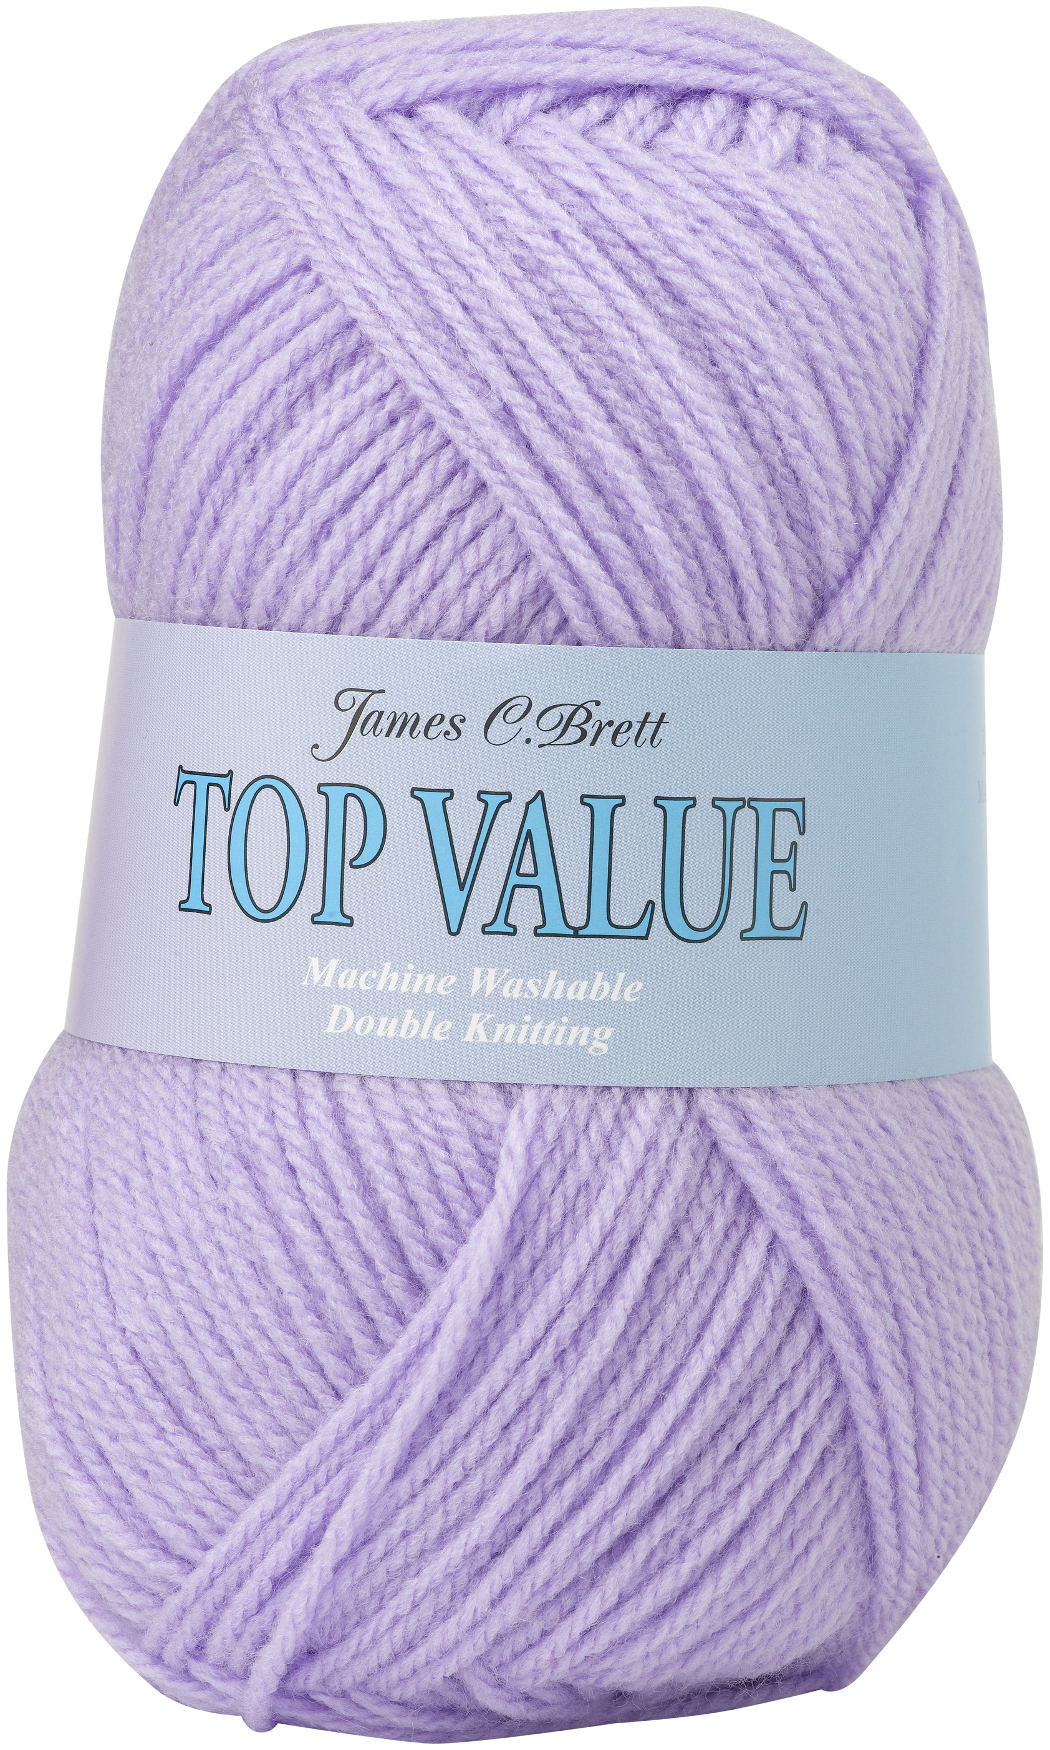 machine washable wool yarn